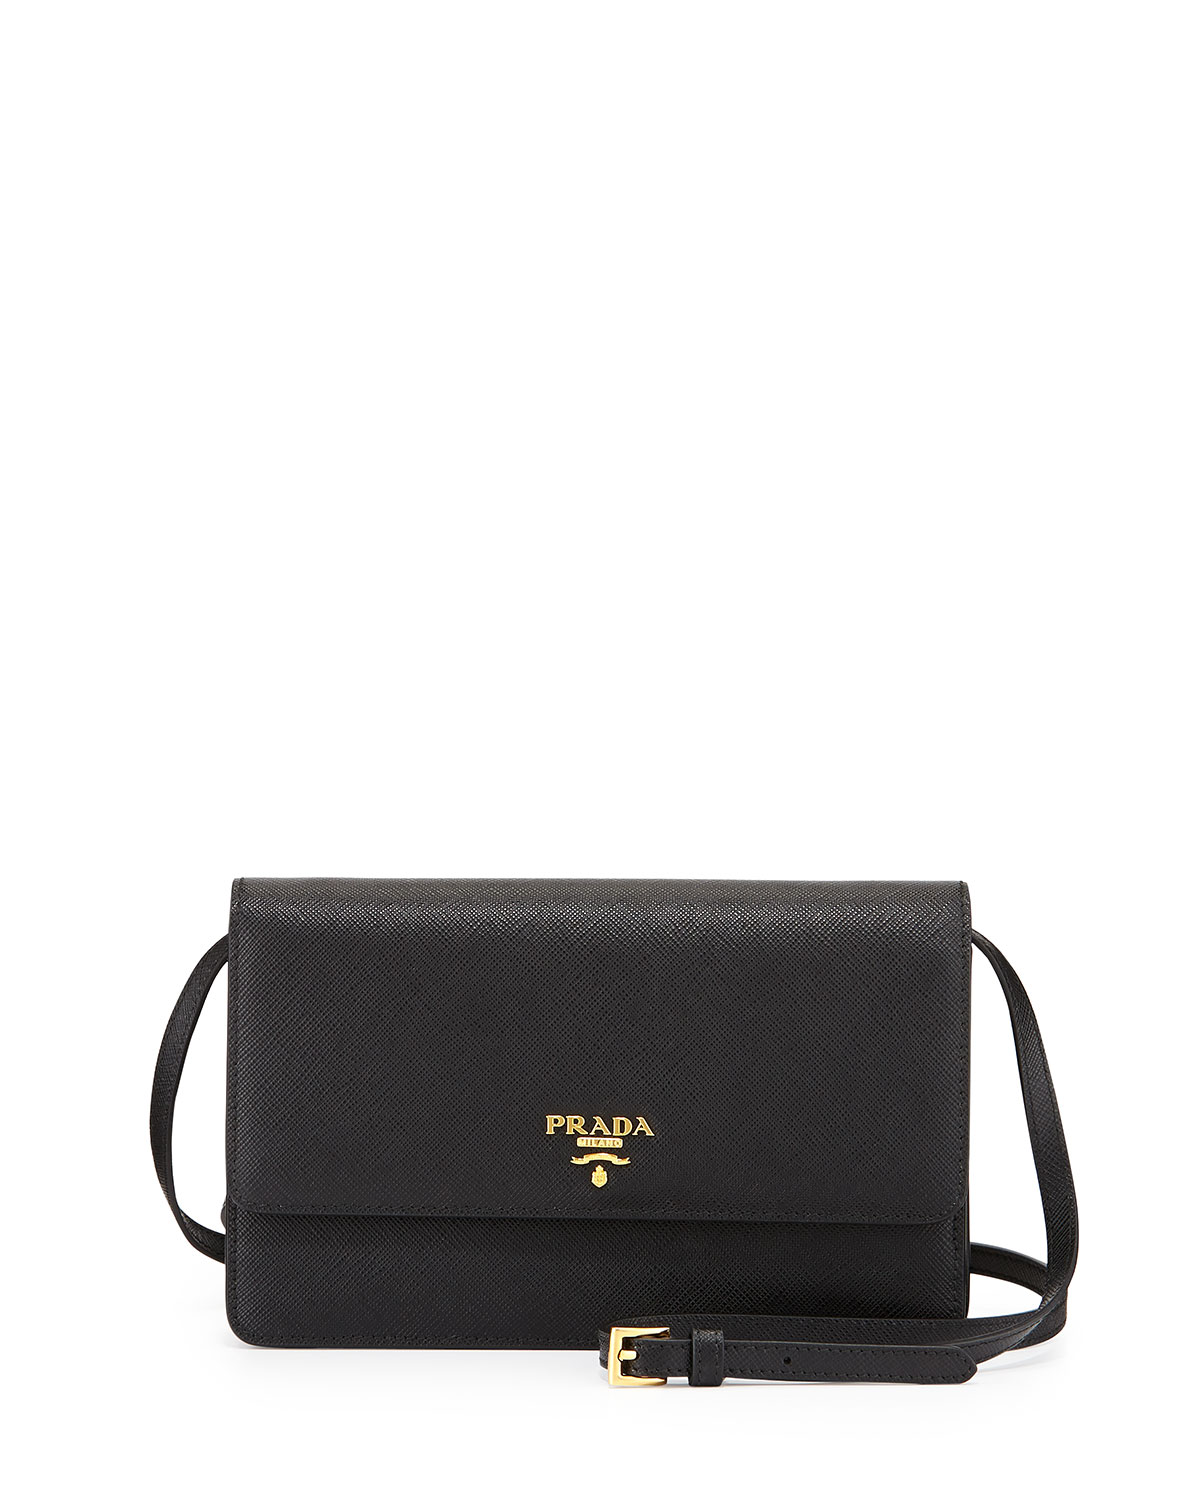 a365a7858d61 Prada Saffiano Mini Crossbody Bag, Black (Nero) | Neiman Marcus